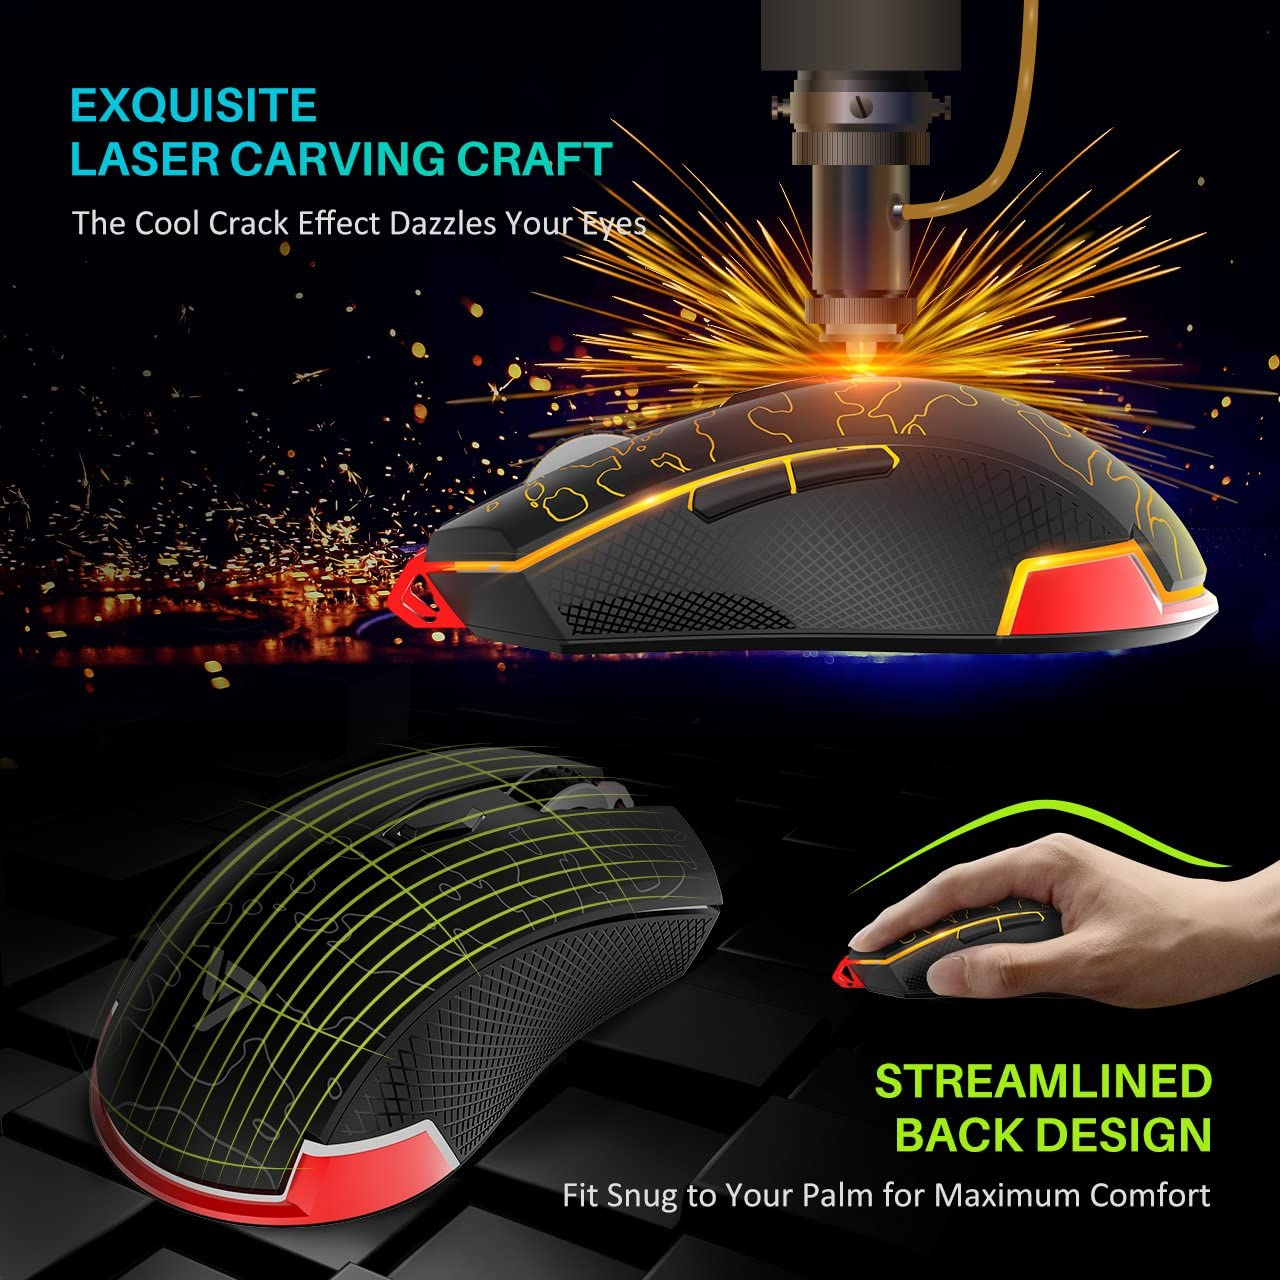 Ergonomic Grips VicTsing Backlit Gaming Wired Mouse High Up to 5500 DPI Windows Vista 6 Adjustable DPI Levels 3 Changeable Breathing Light Linux 6 Buttons Design Compatible Mac OS